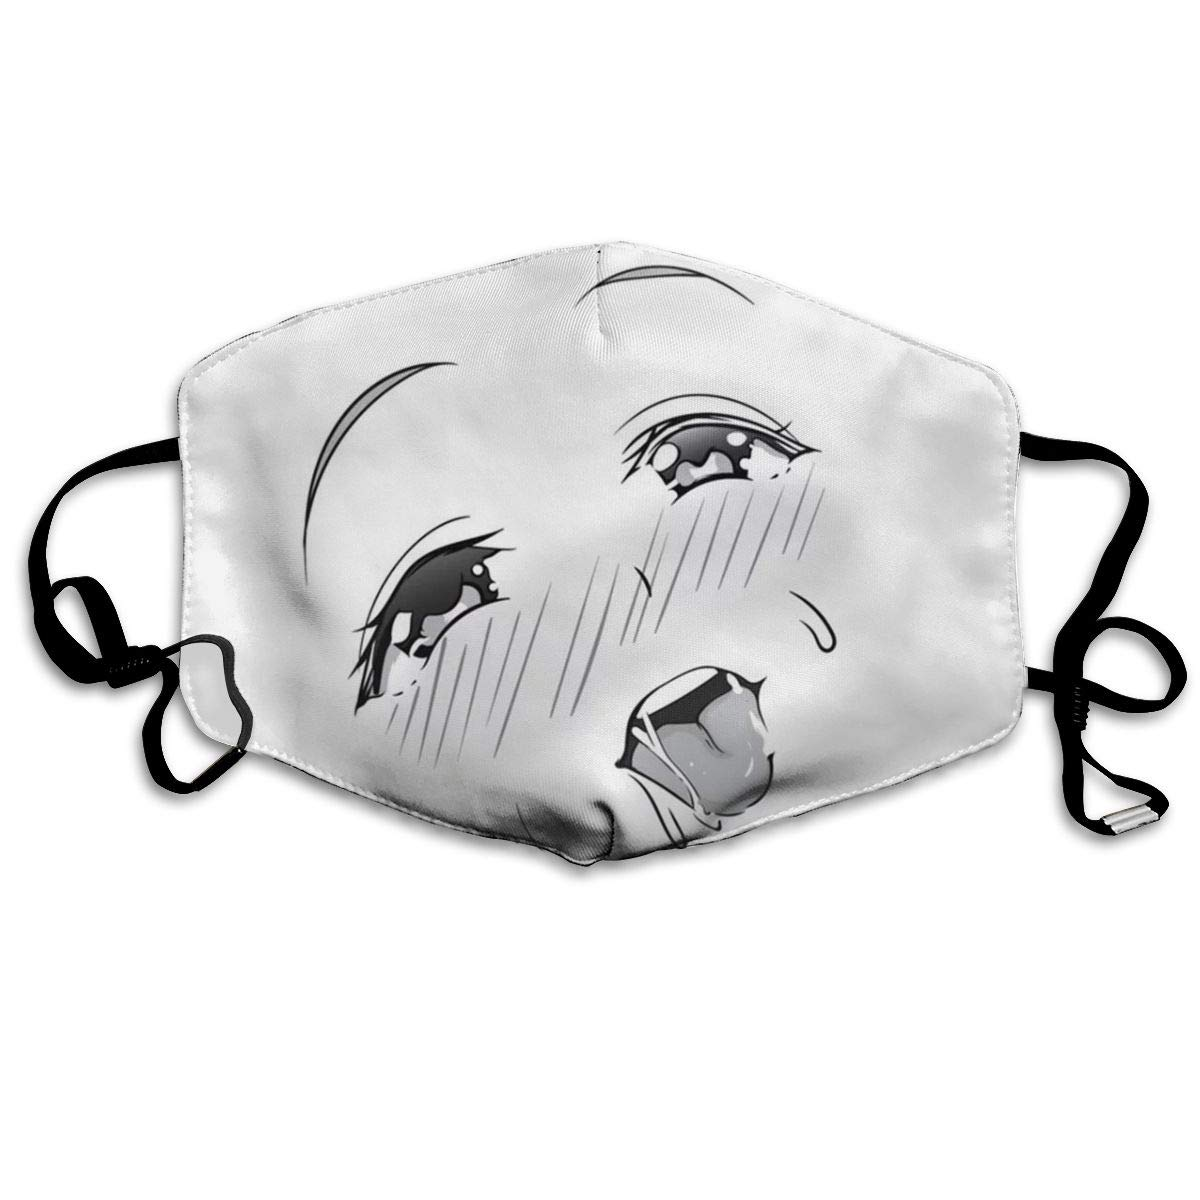 Mouth Mask Ahegao Face Black Print Masks - Breathable Adjustable Windproof Mouth-Muffle, Camping Running For Women And Men